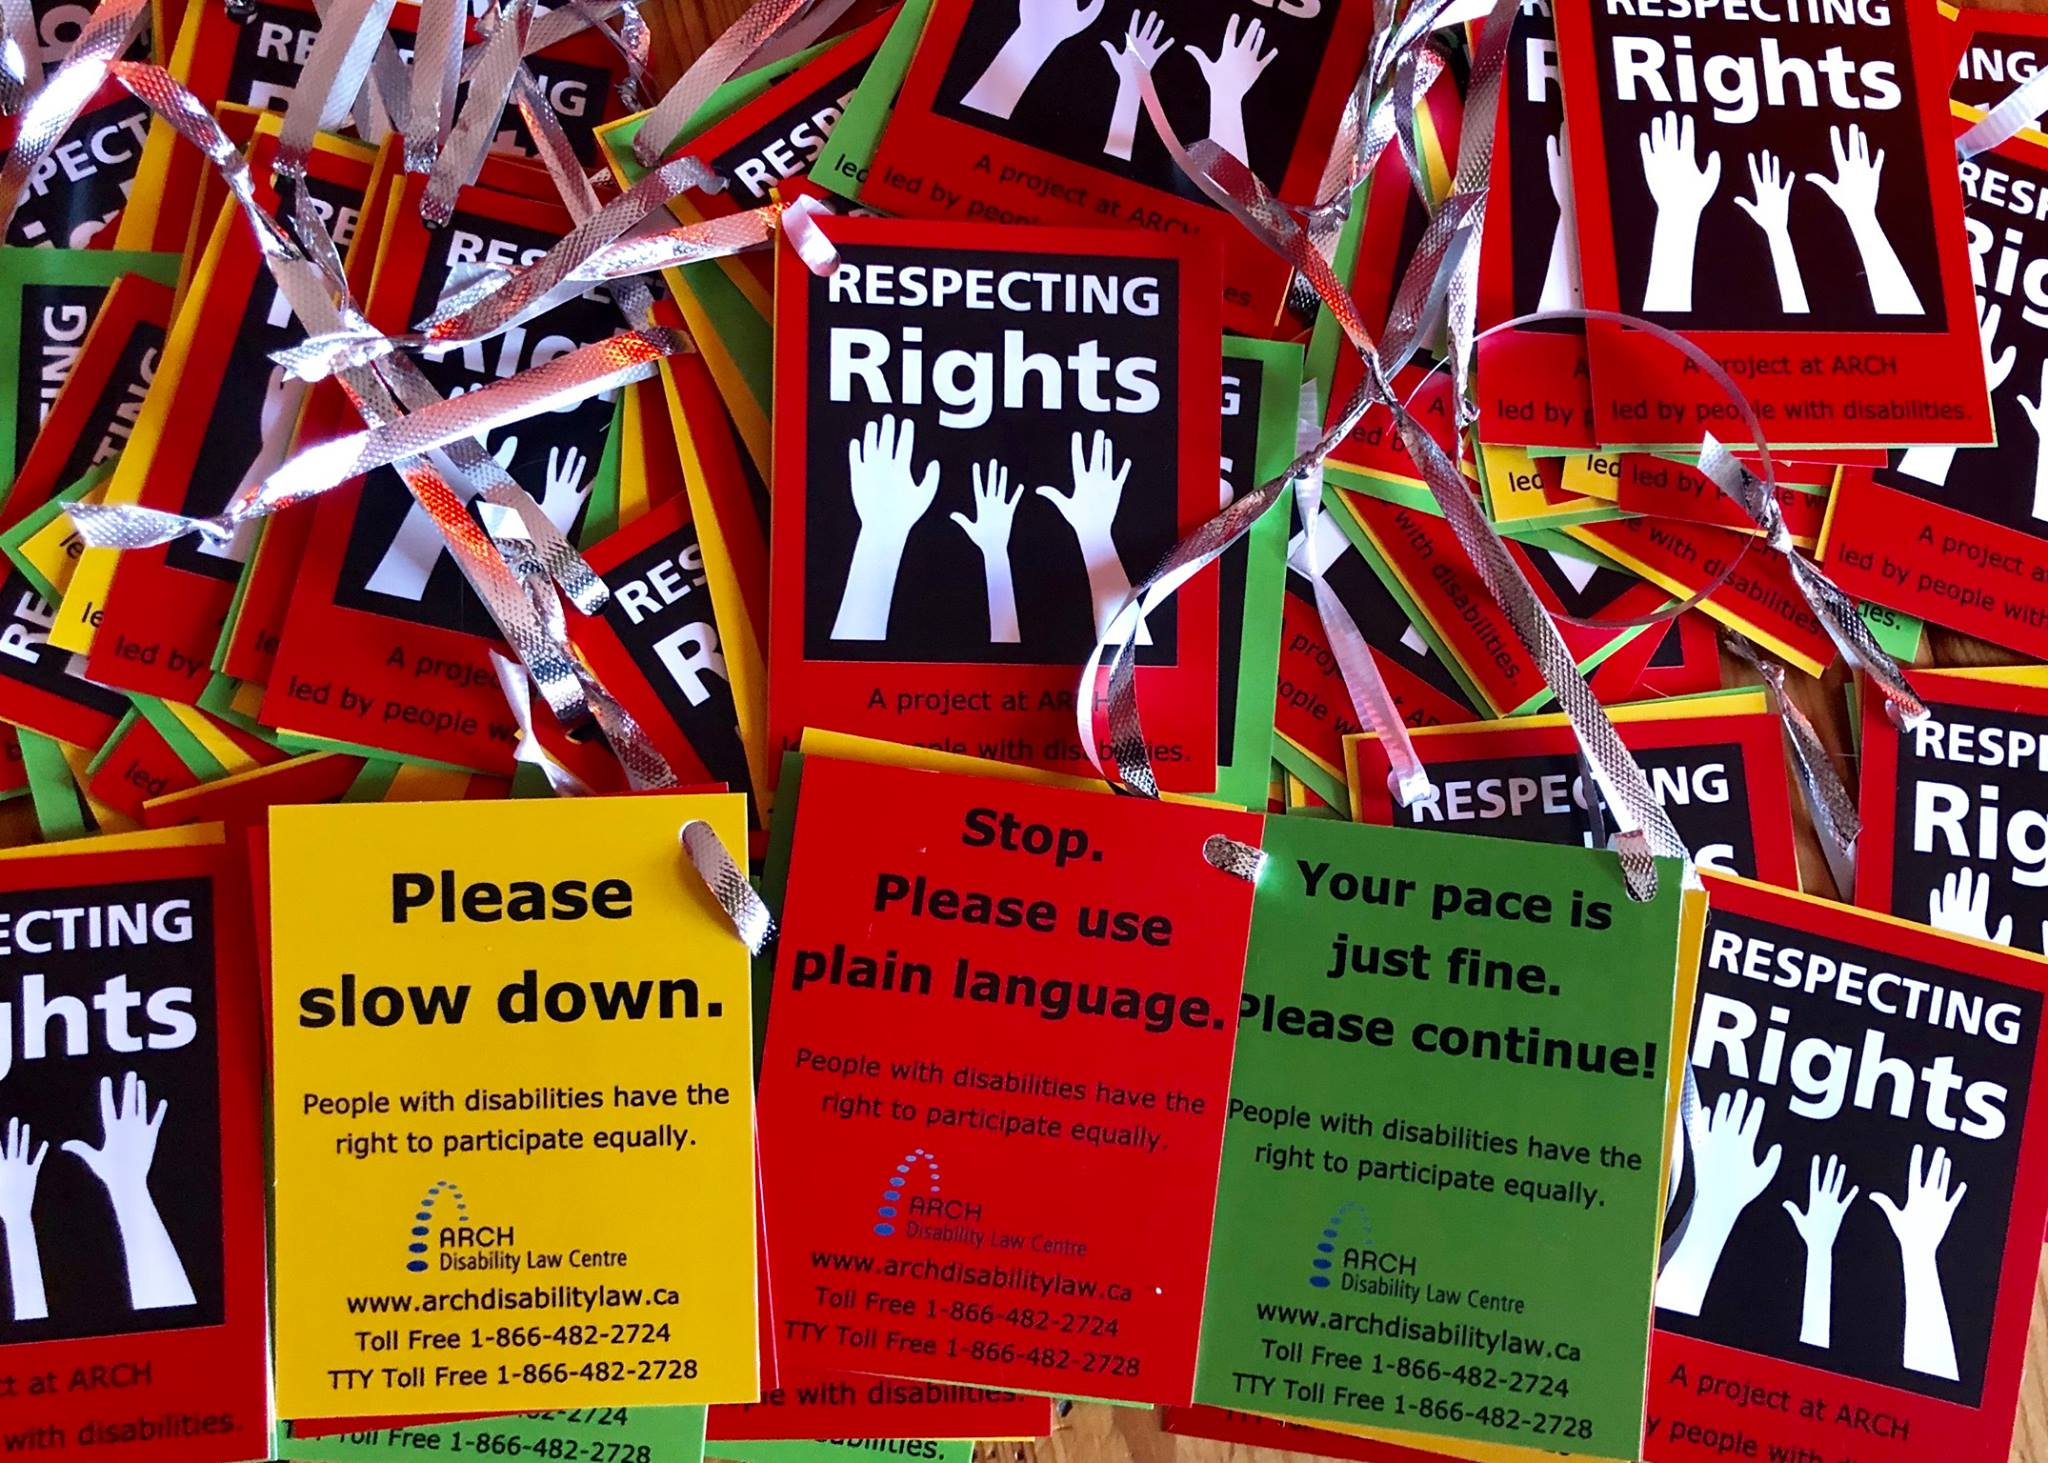 photo of Respecting Rights cards